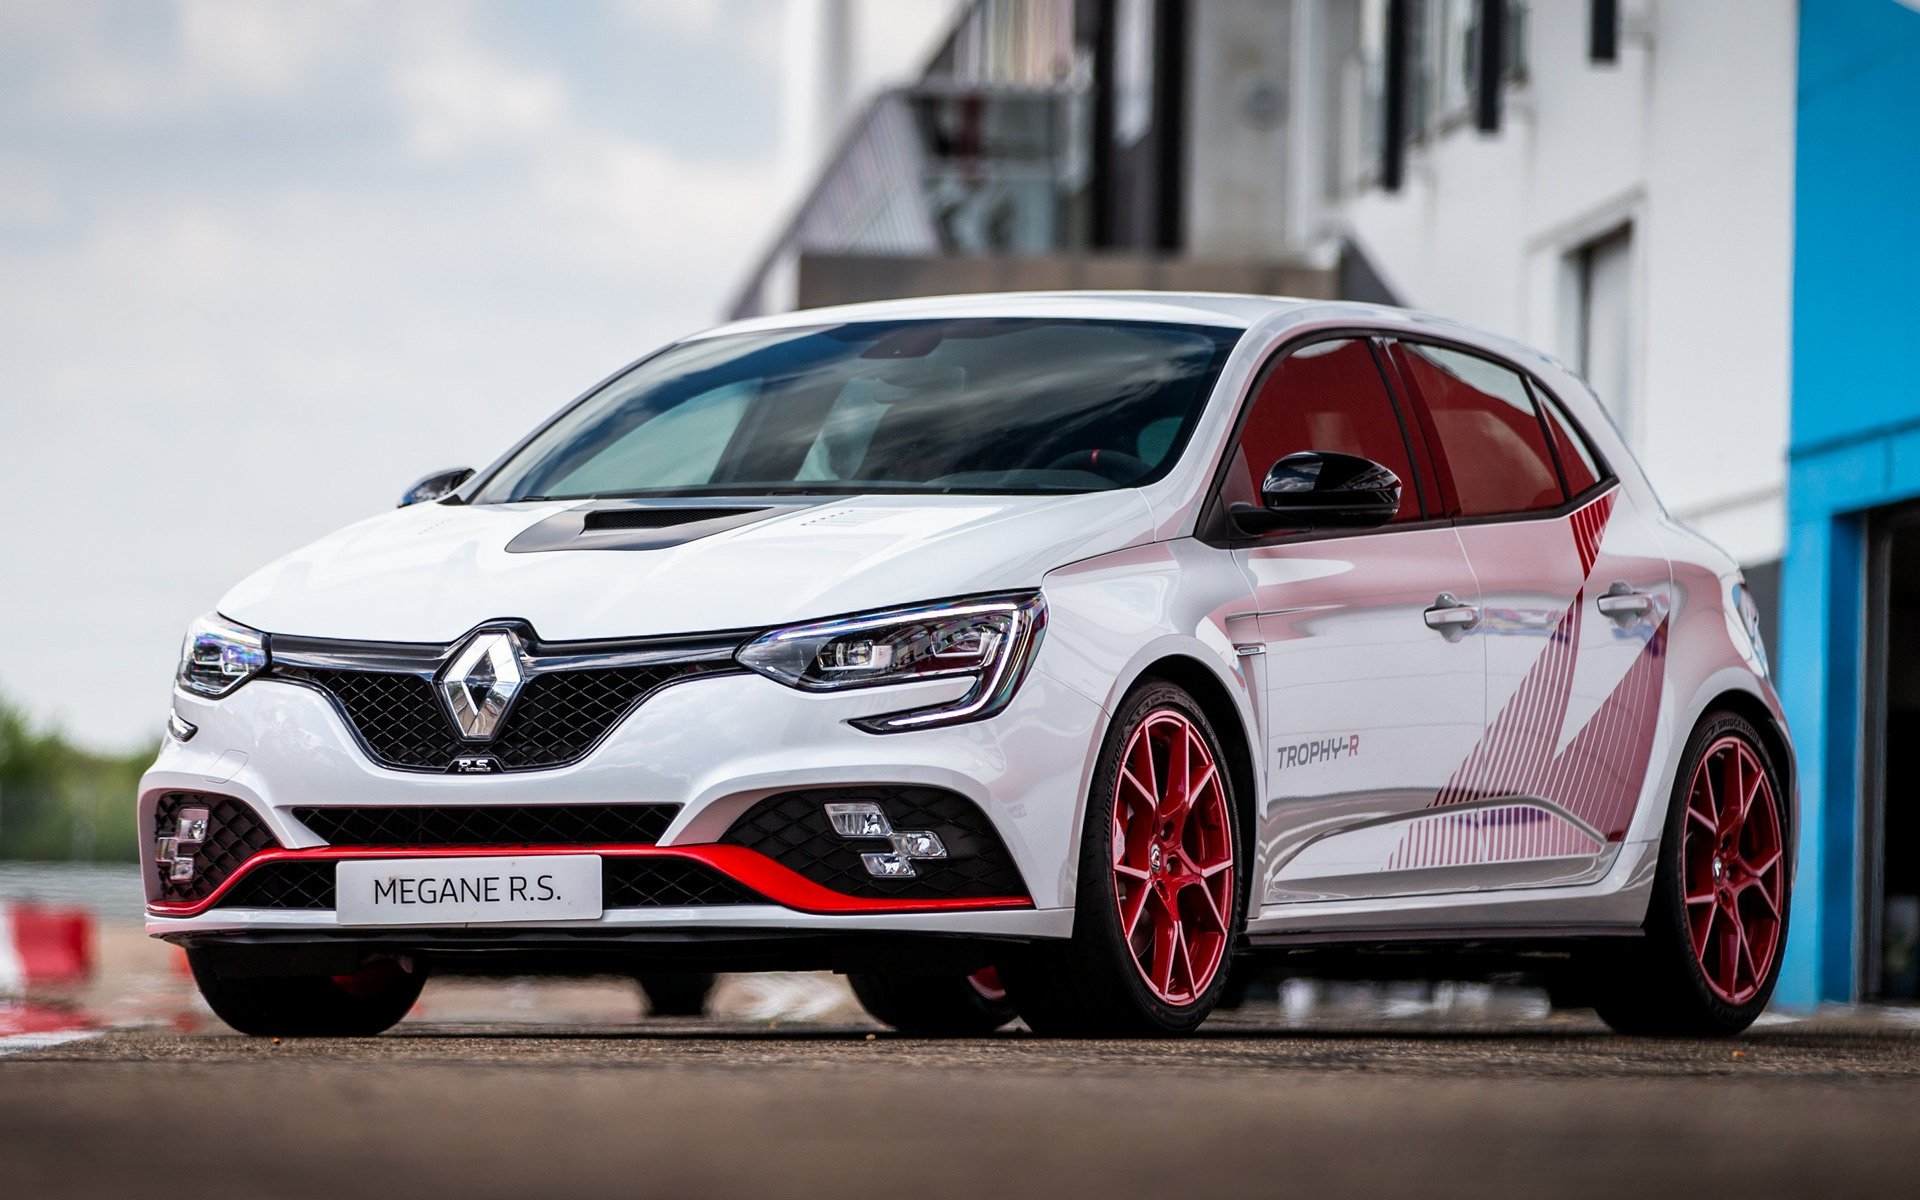 2019 Renault Megane RS Trophy-R - Wallpapers and HD Images ...